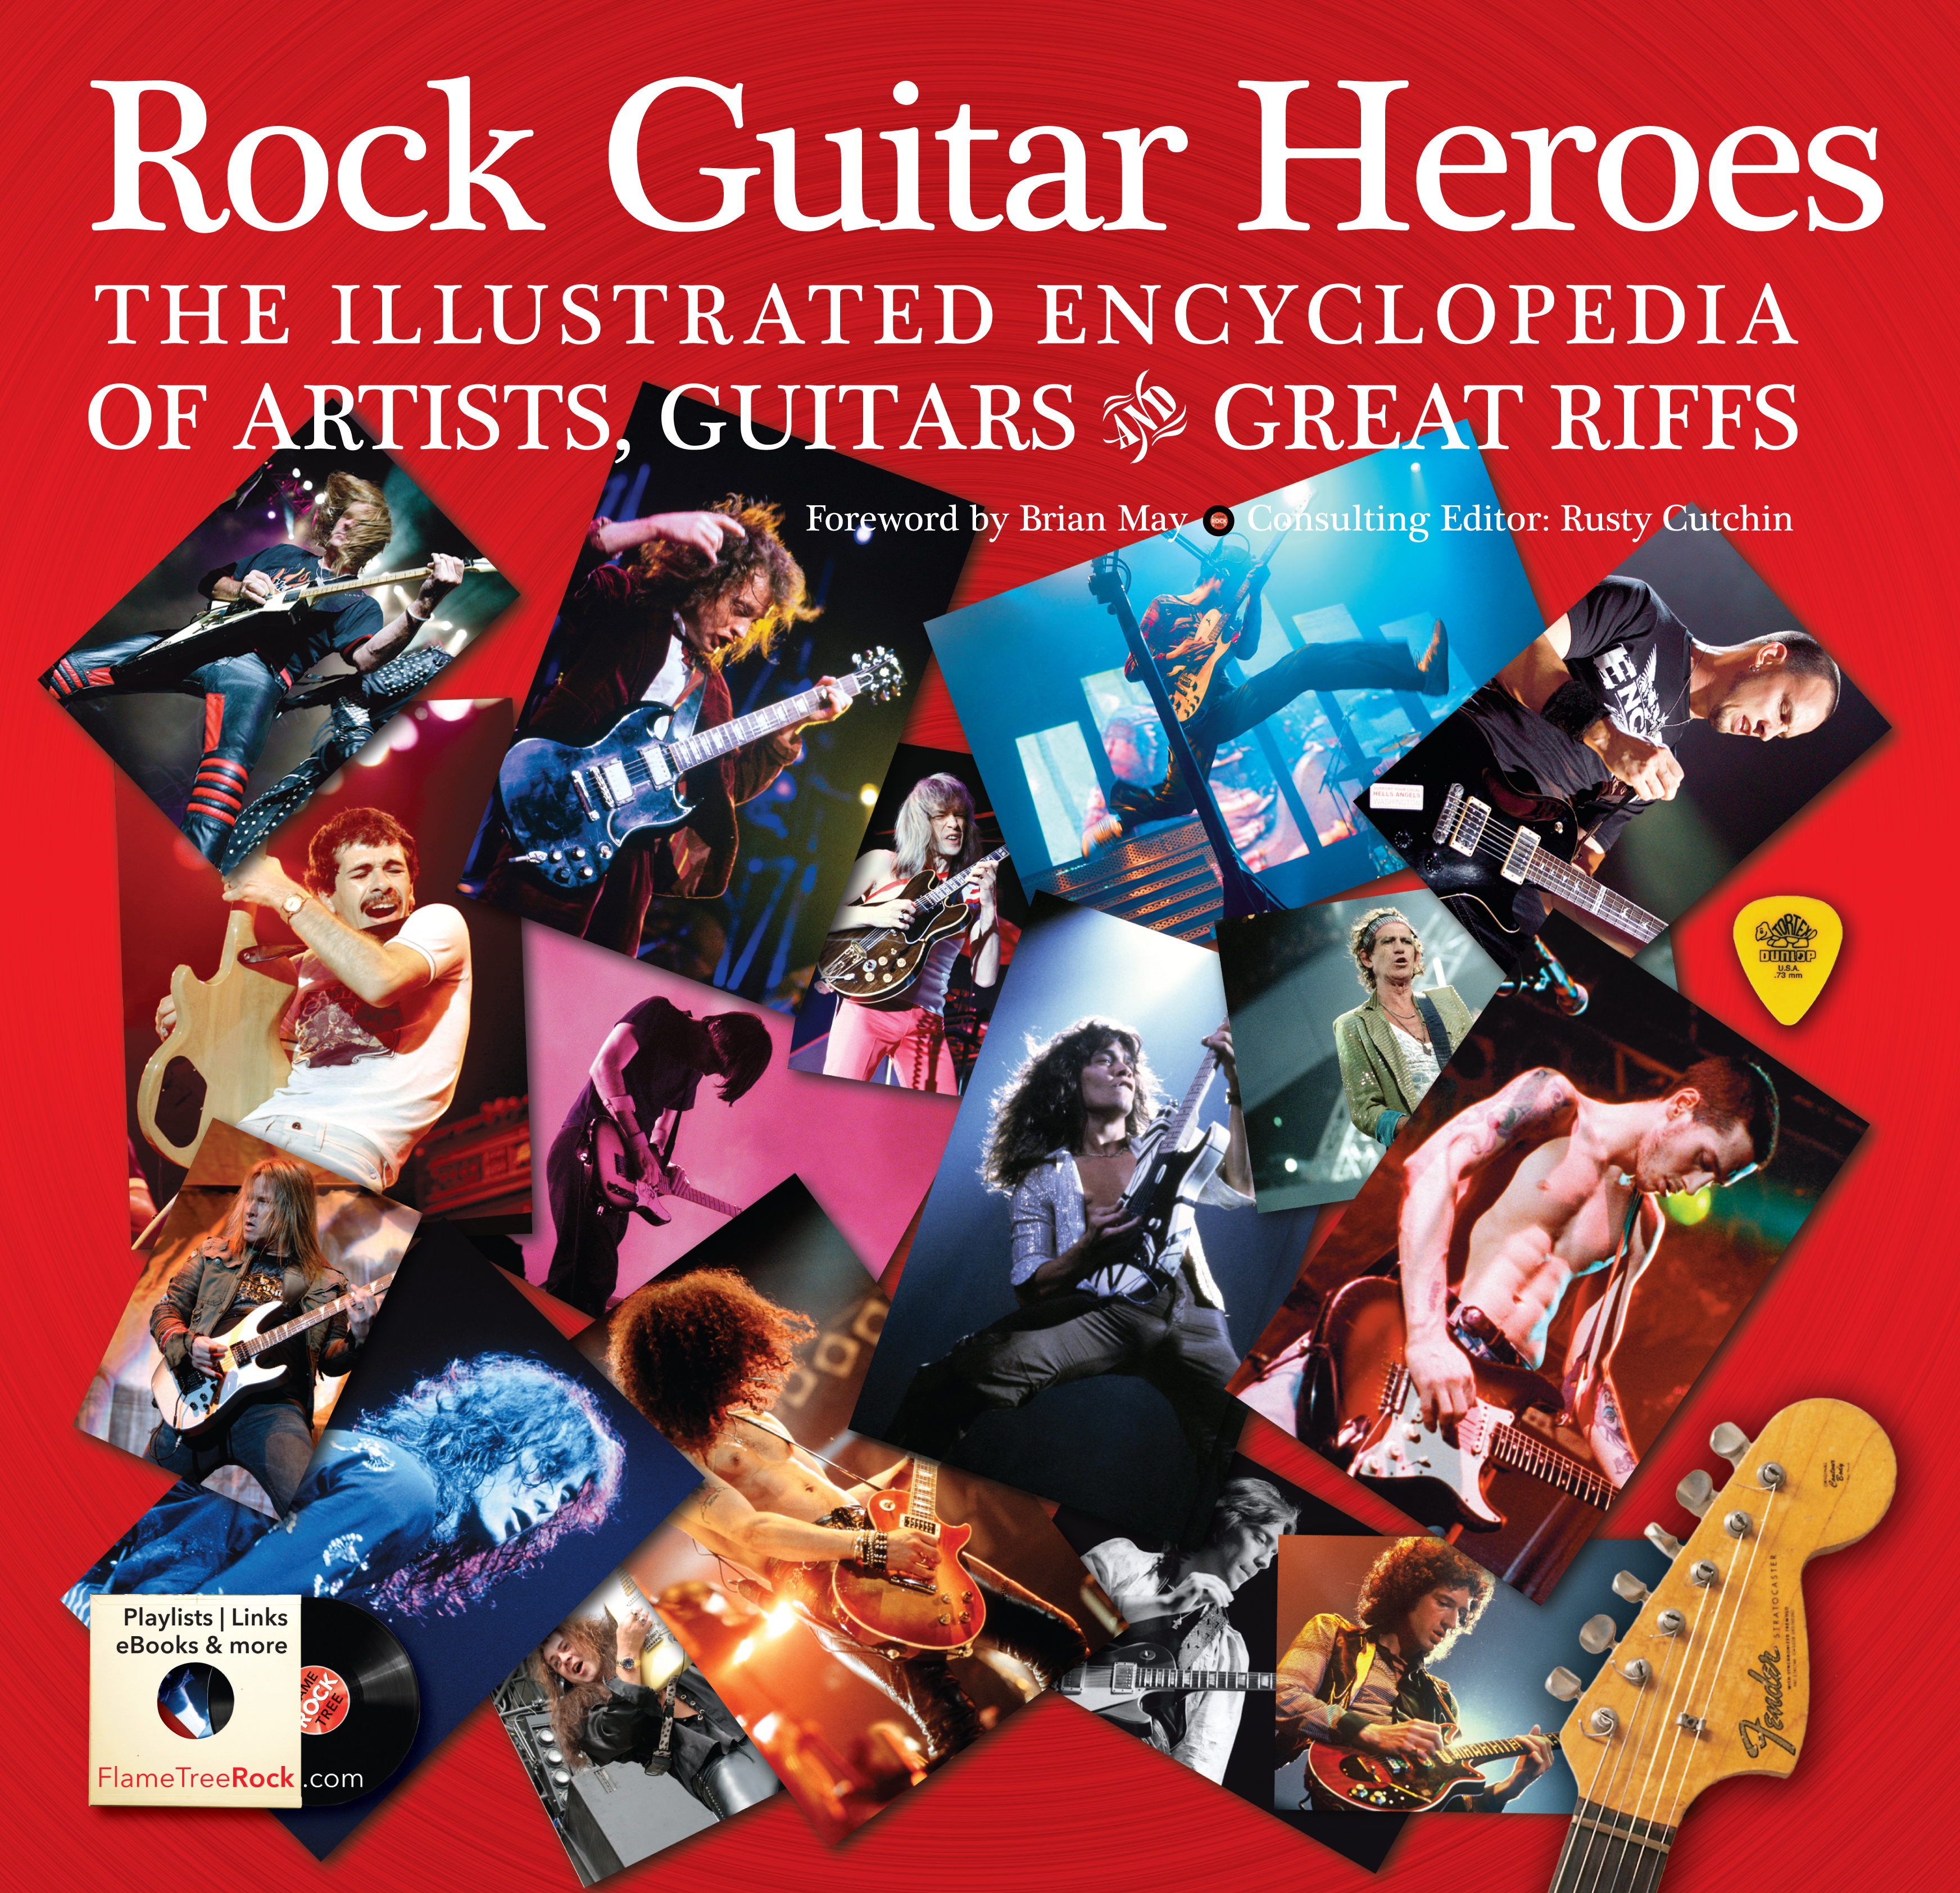 Rock Guitar Heroes; Flame Tree Publishing